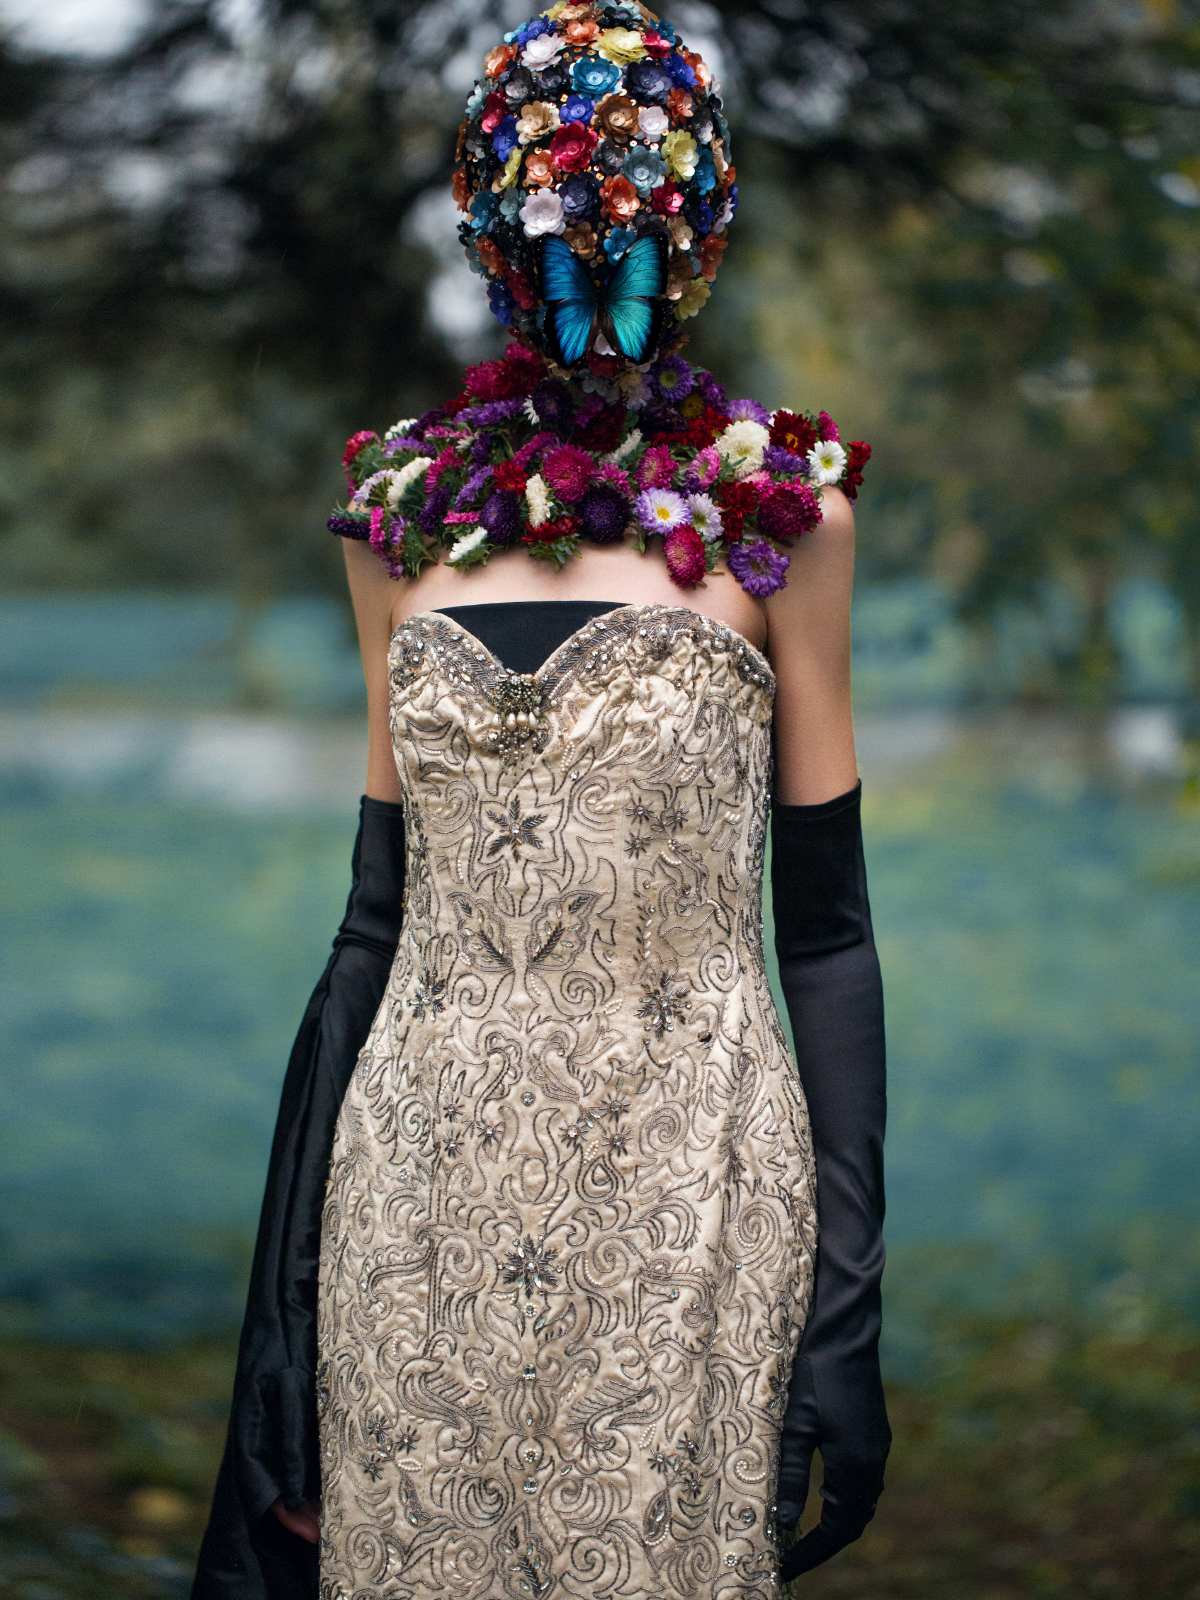 couture adventure: magda laguinge by jumbo tsui for harper's bazaar china december 2013